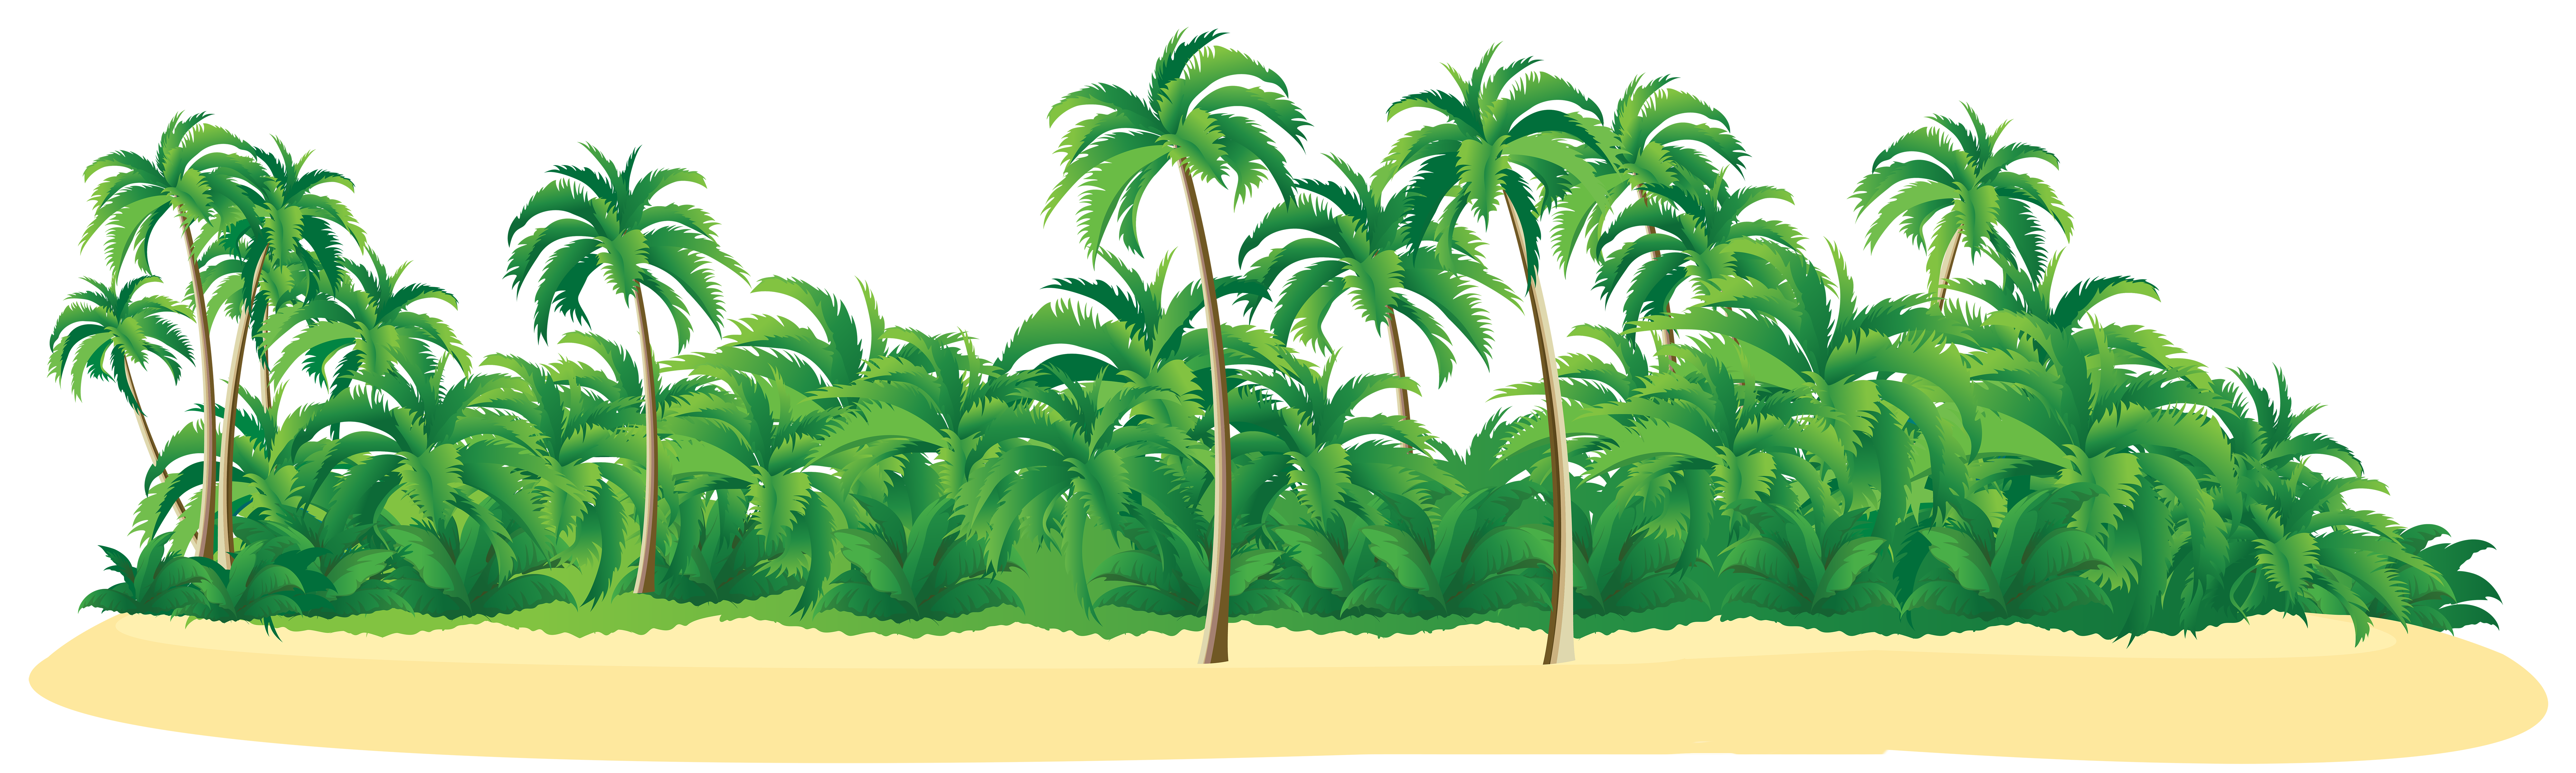 Tropical island images free clipart picture library Summer Tropical Island with Palm Trees PNG Clip Art Image ... picture library